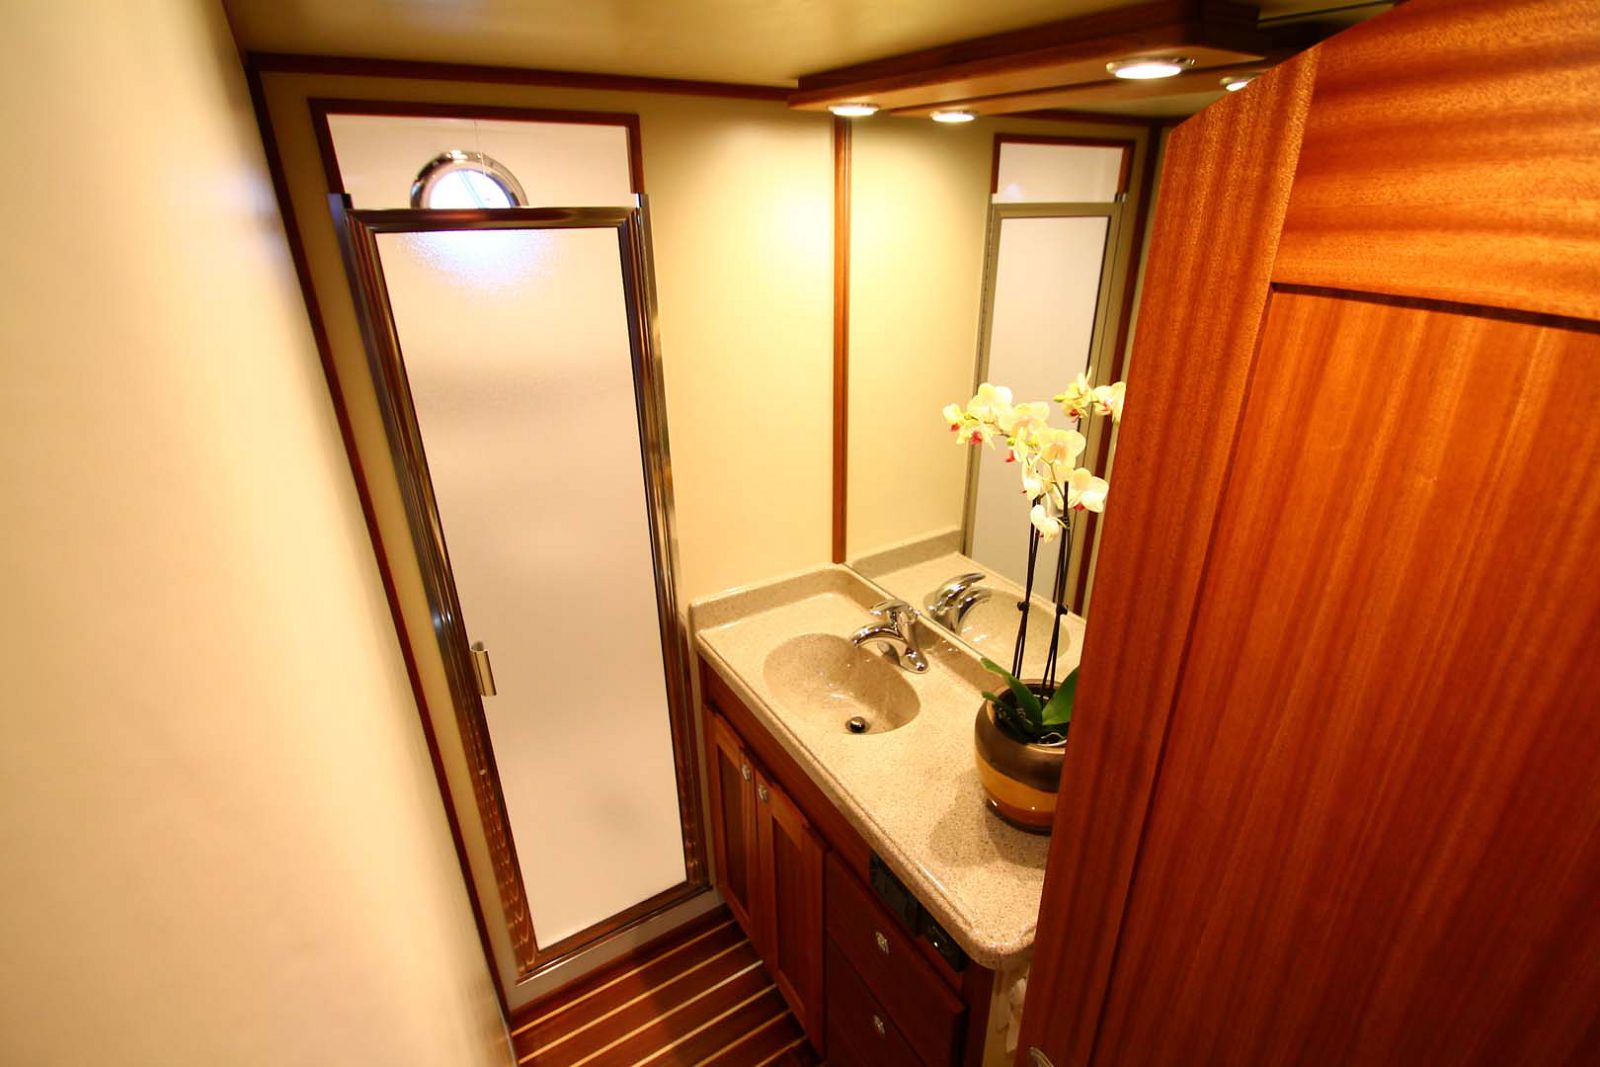 bathroom sink on american tug 365